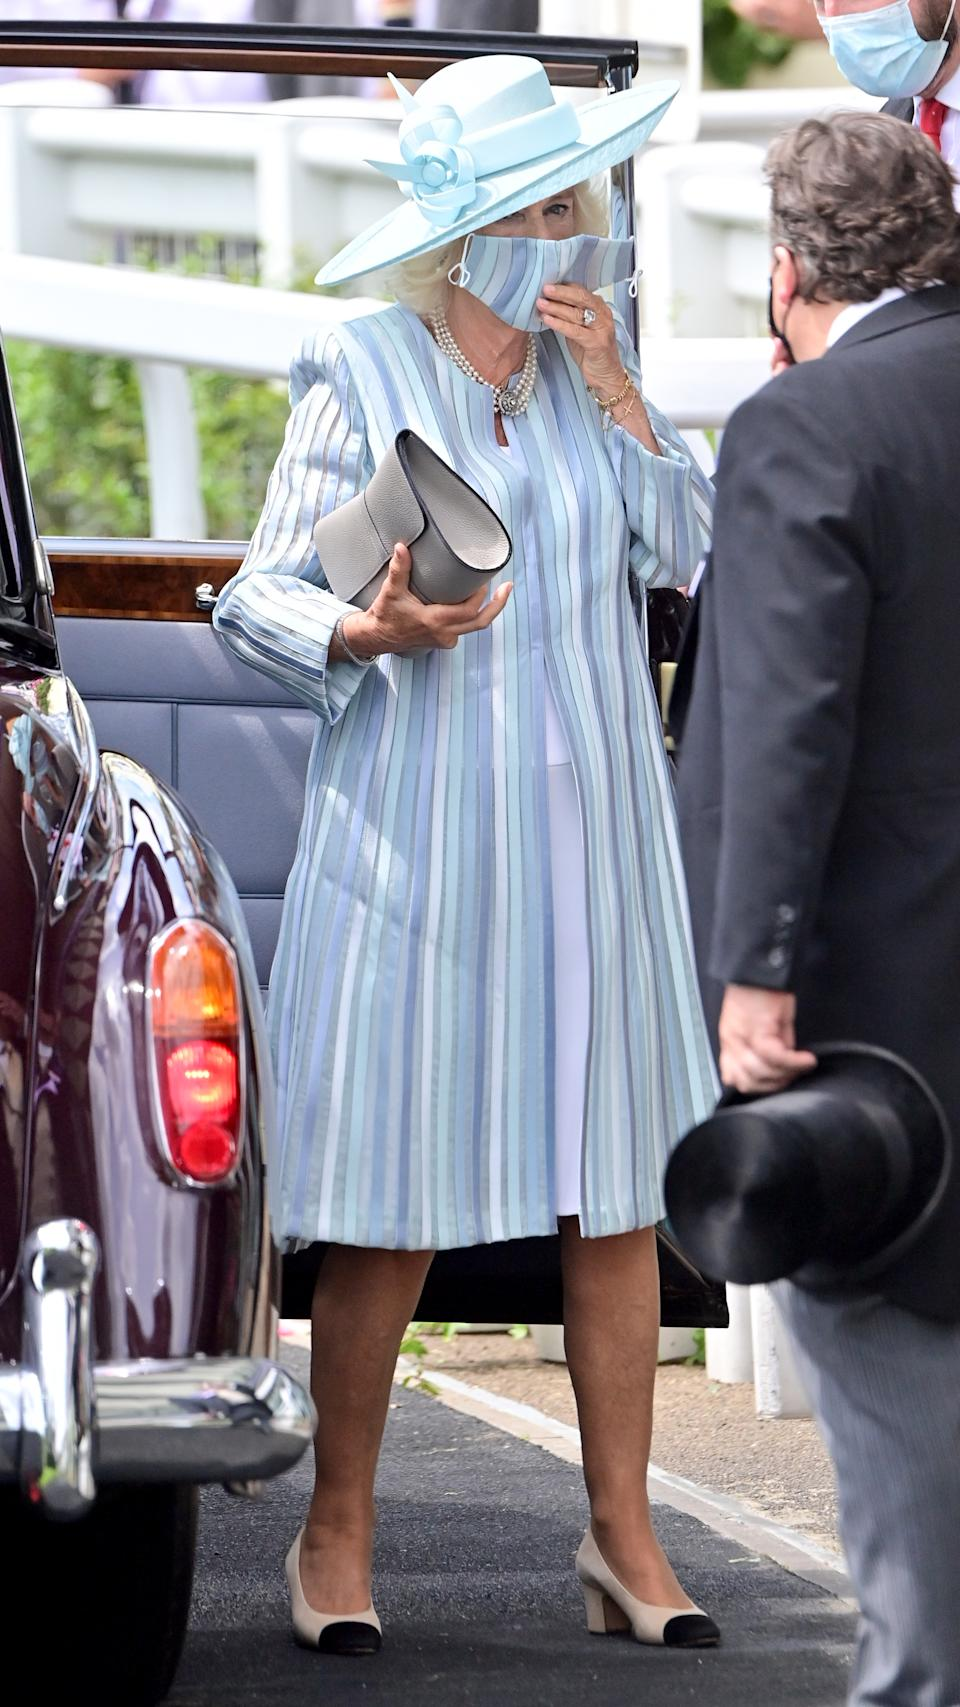 ASCOT, ENGLAND - JUNE 15: Camilla, Duchess of Cornwall attends Royal Ascot 2021 at Ascot Racecourse on June 15, 2021 in Ascot, England. (Photo by Samir Hussein/WireImage)